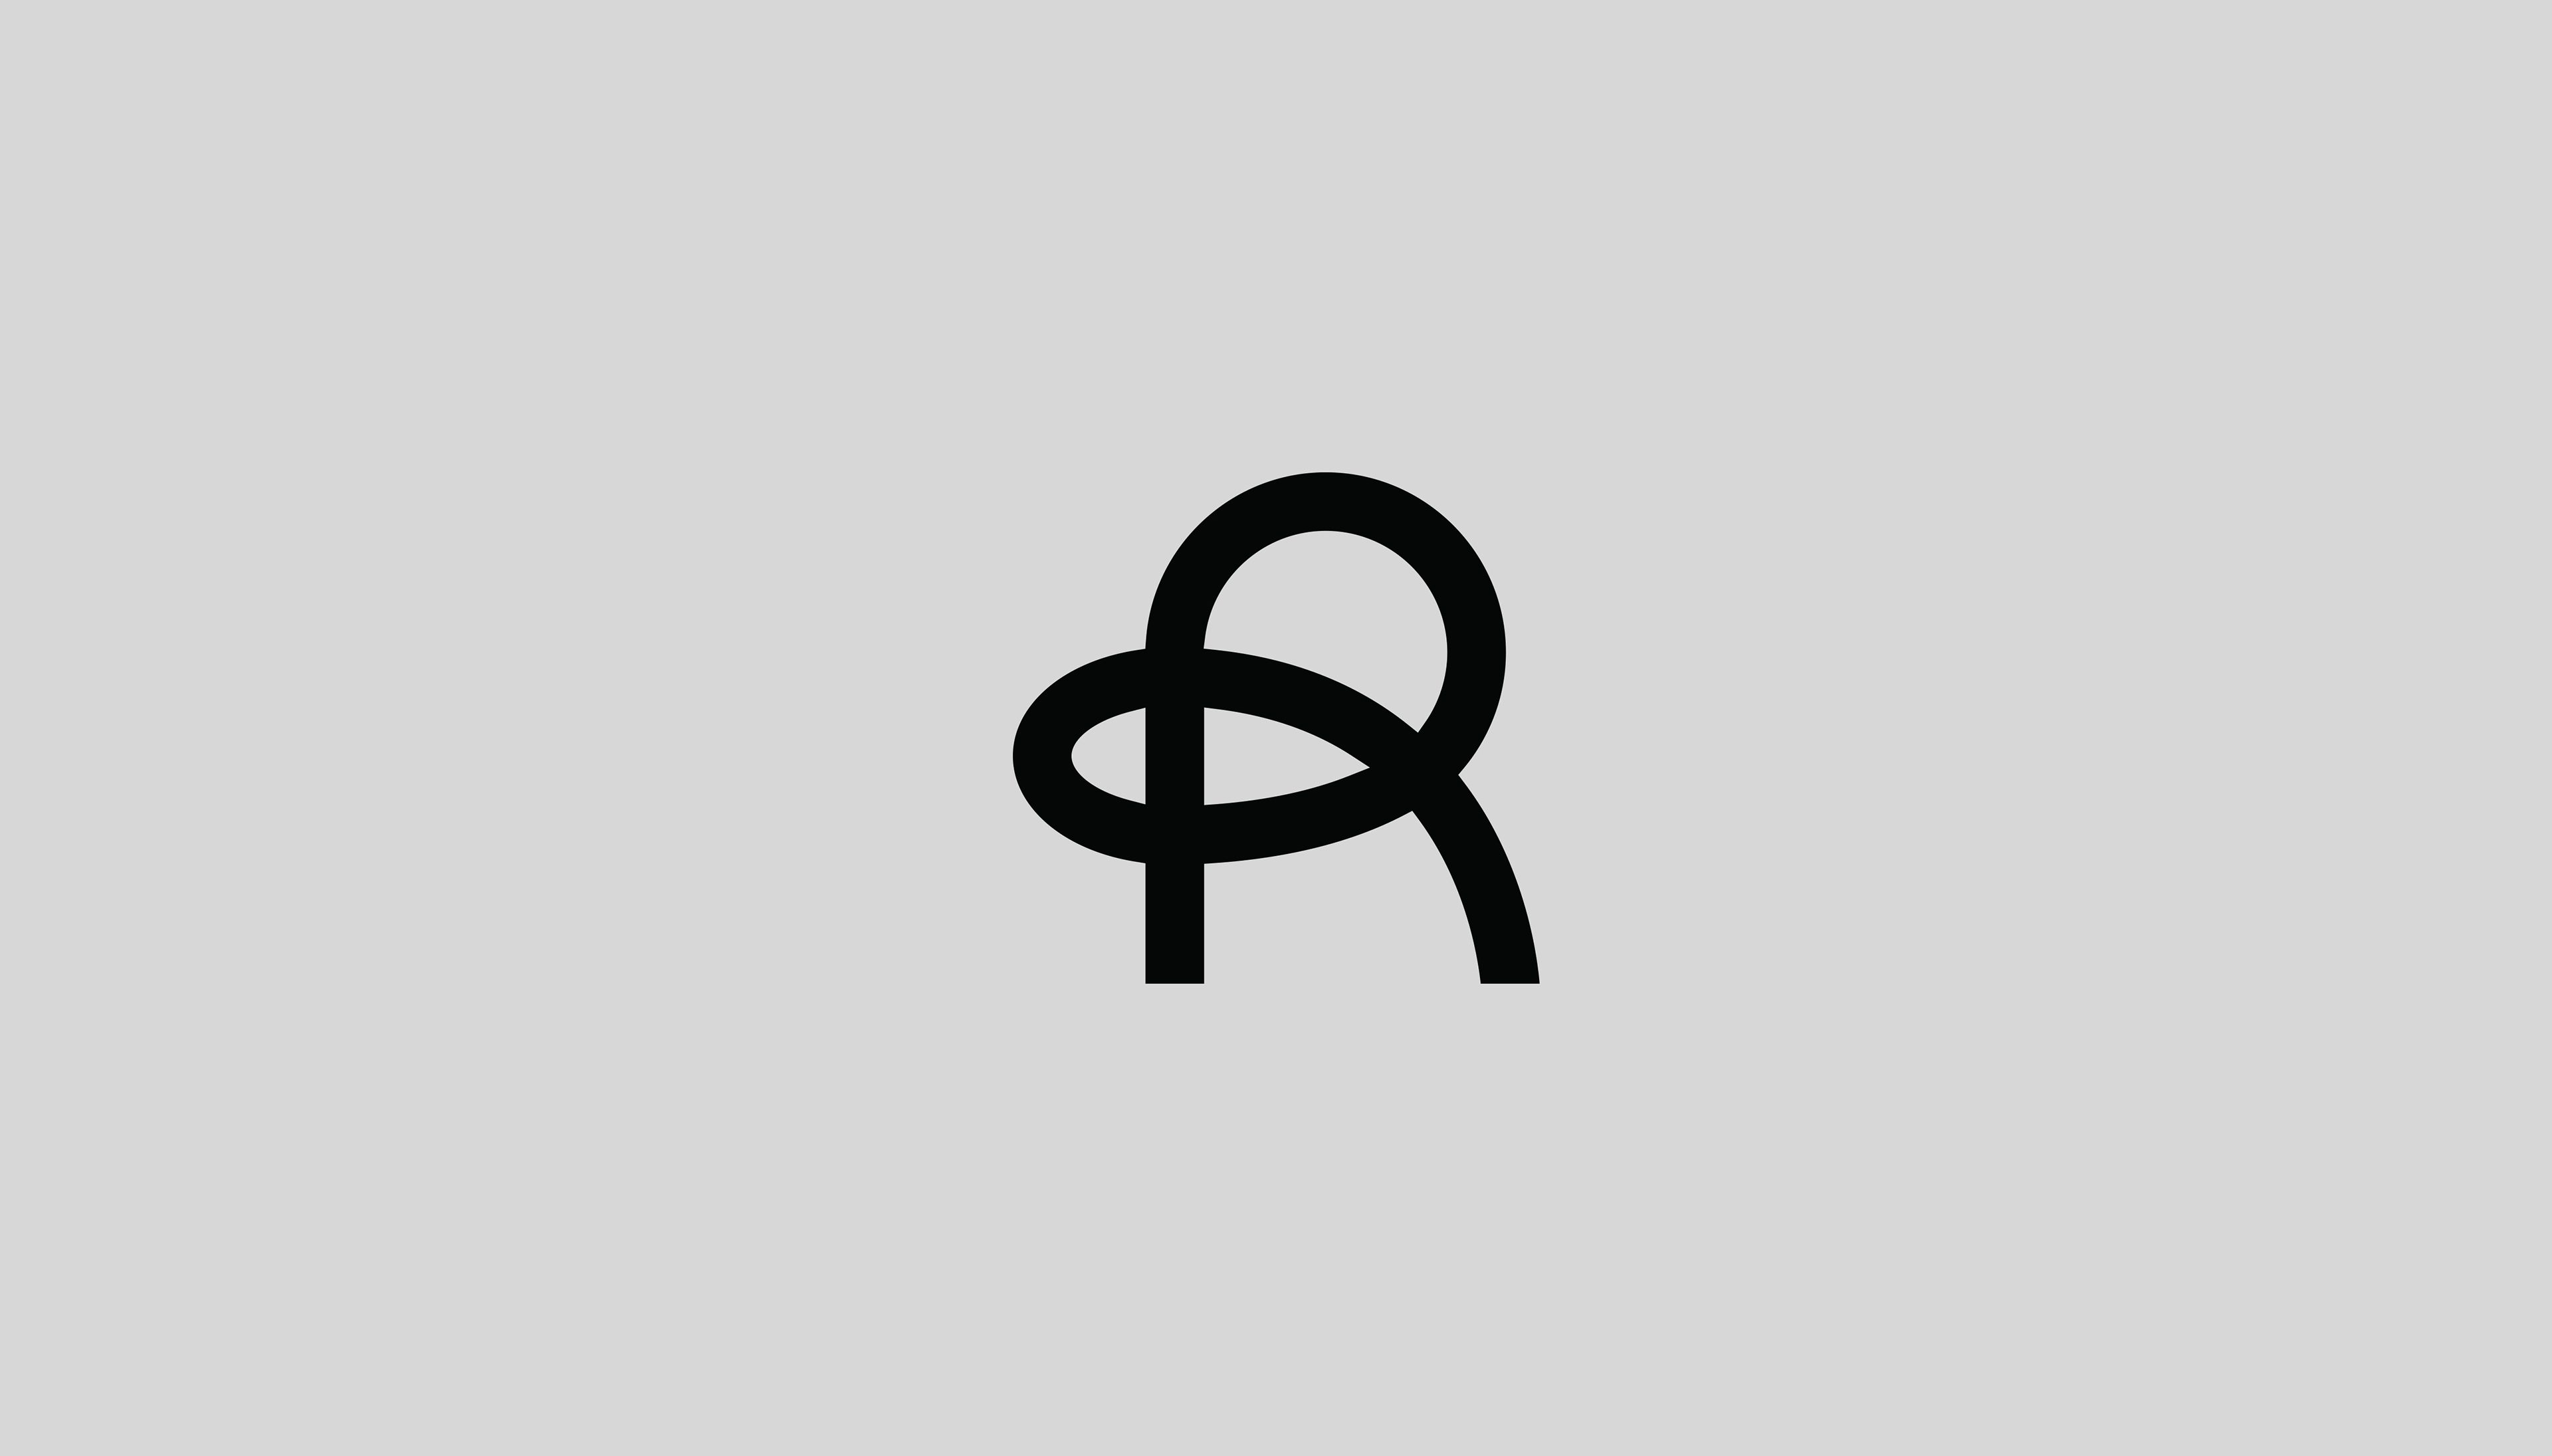 Rapport is a global clothing trading company.The symbol